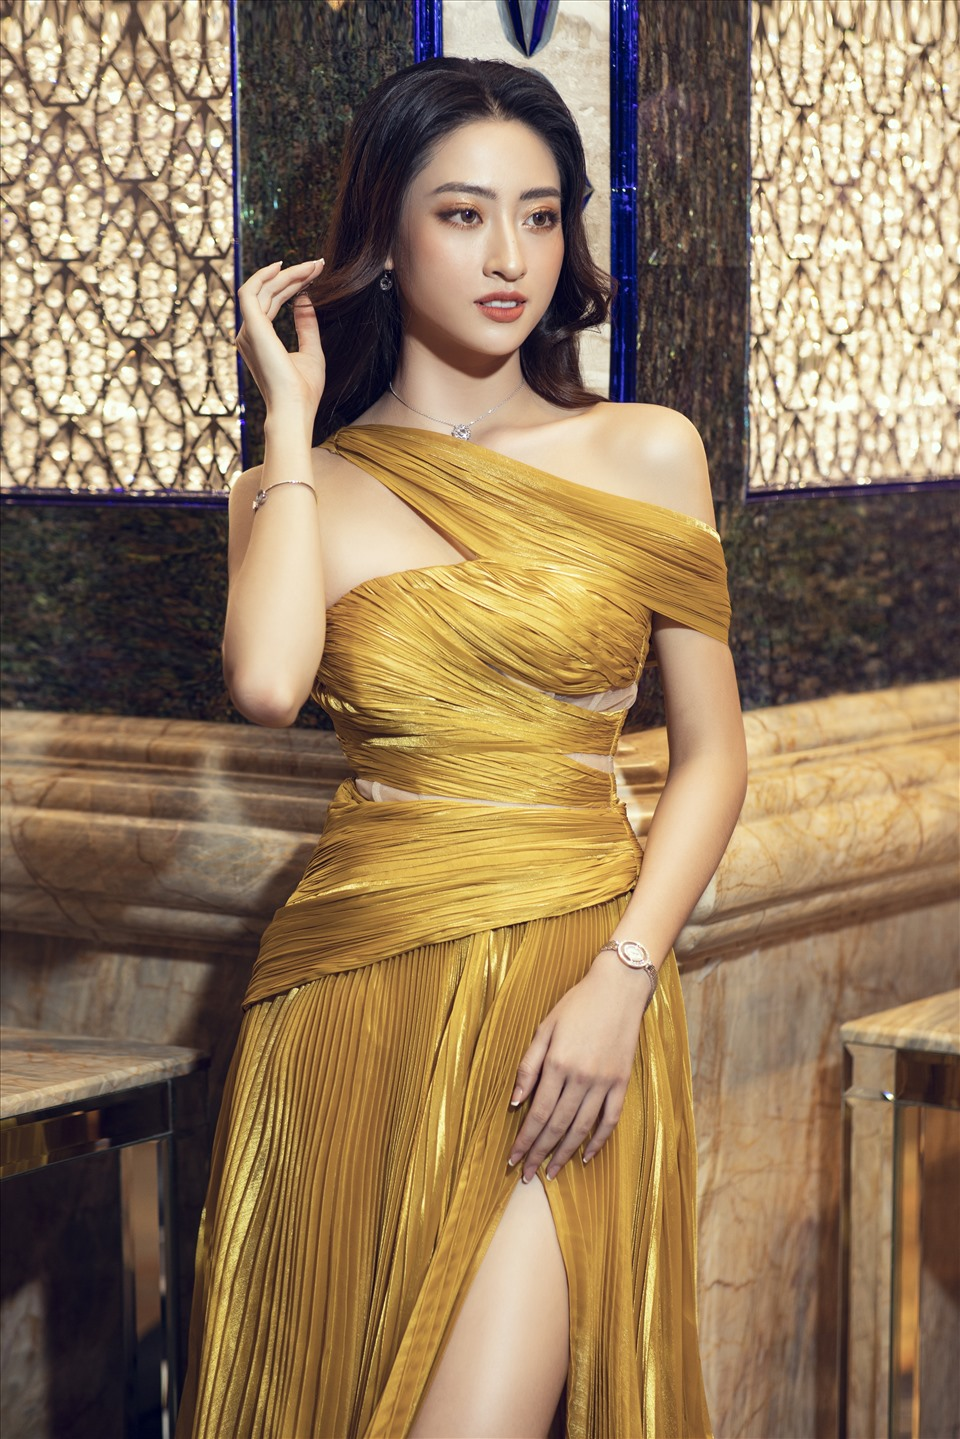 luong-thuy-linh-1-4